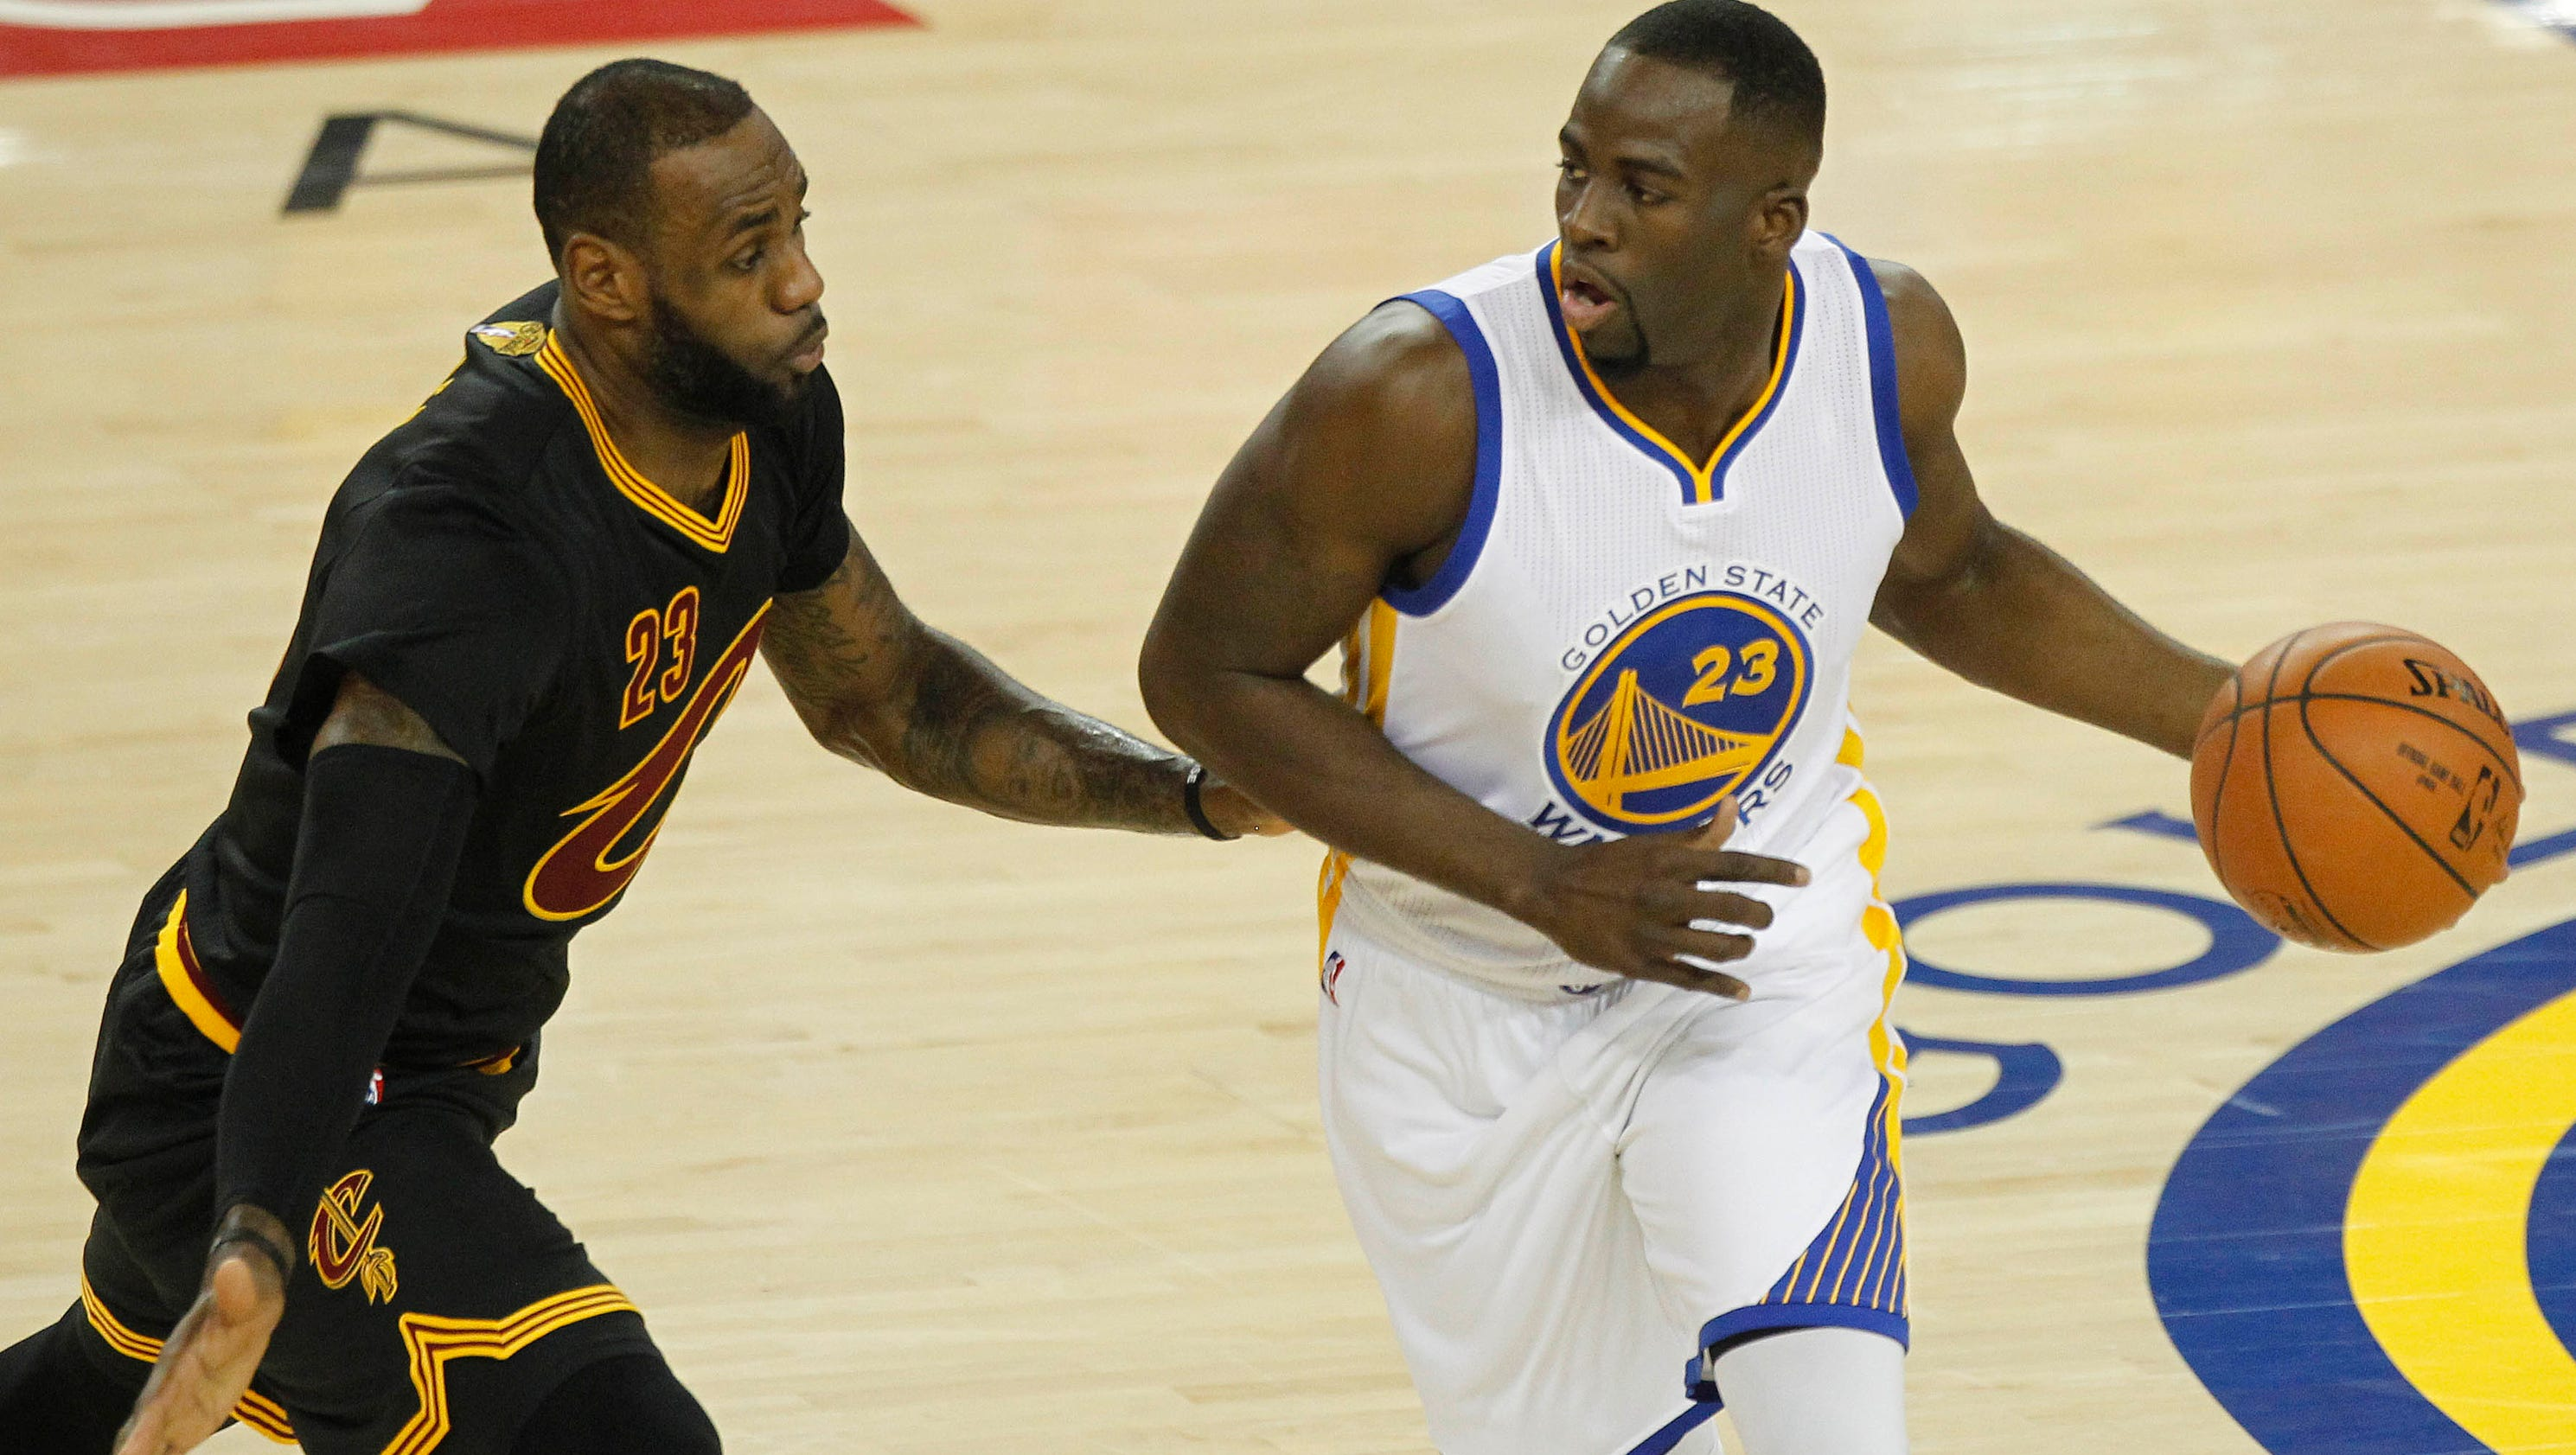 Draymond Green says his big game means nothing